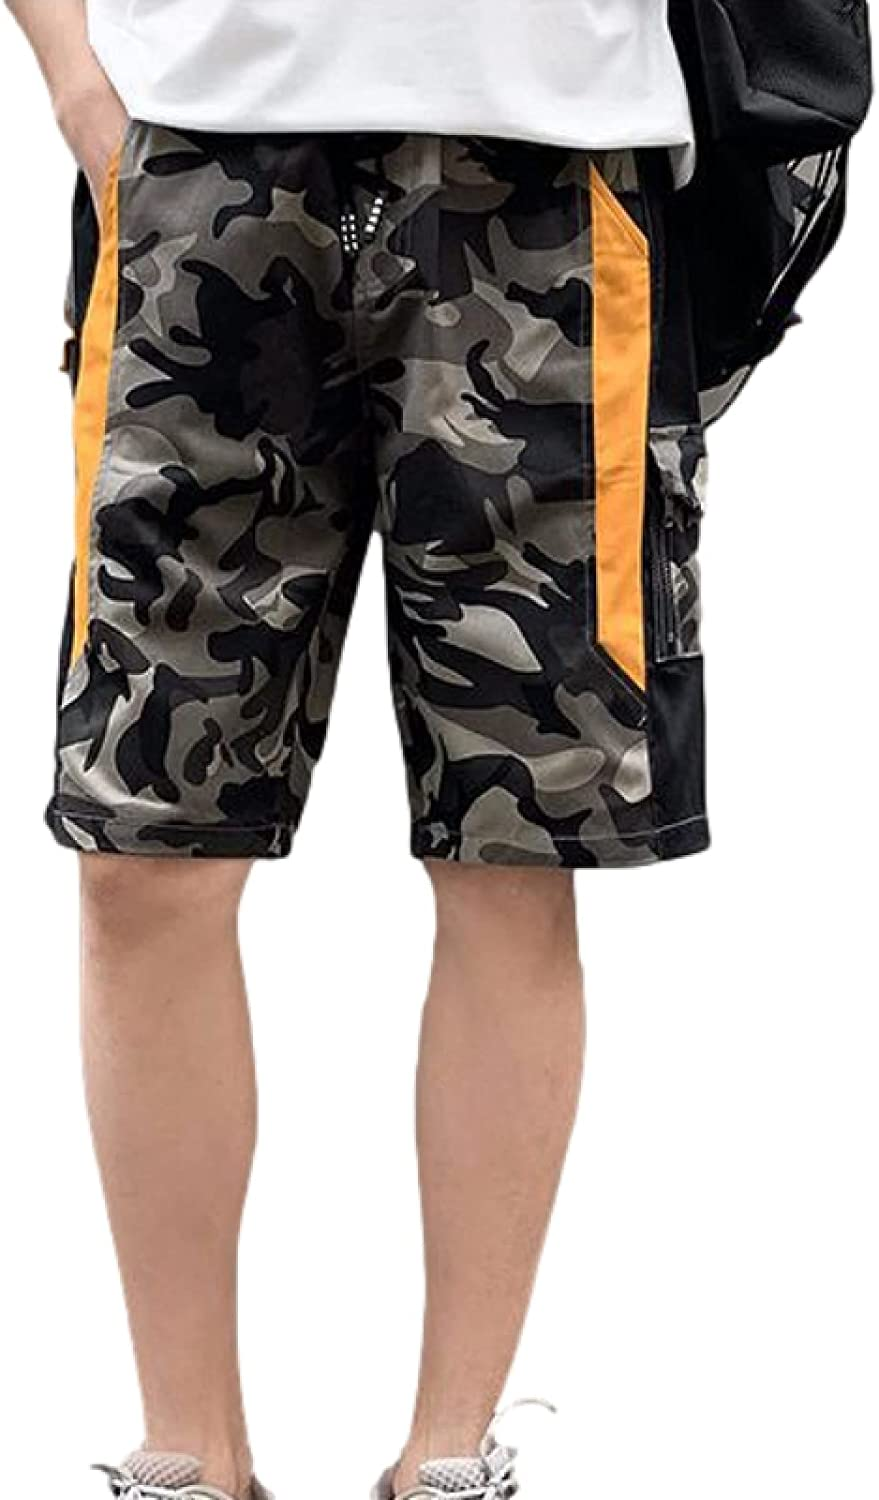 Segindy Men's In stock Casual Large Size Camou Shorts Trend Cargo NEW Fashion